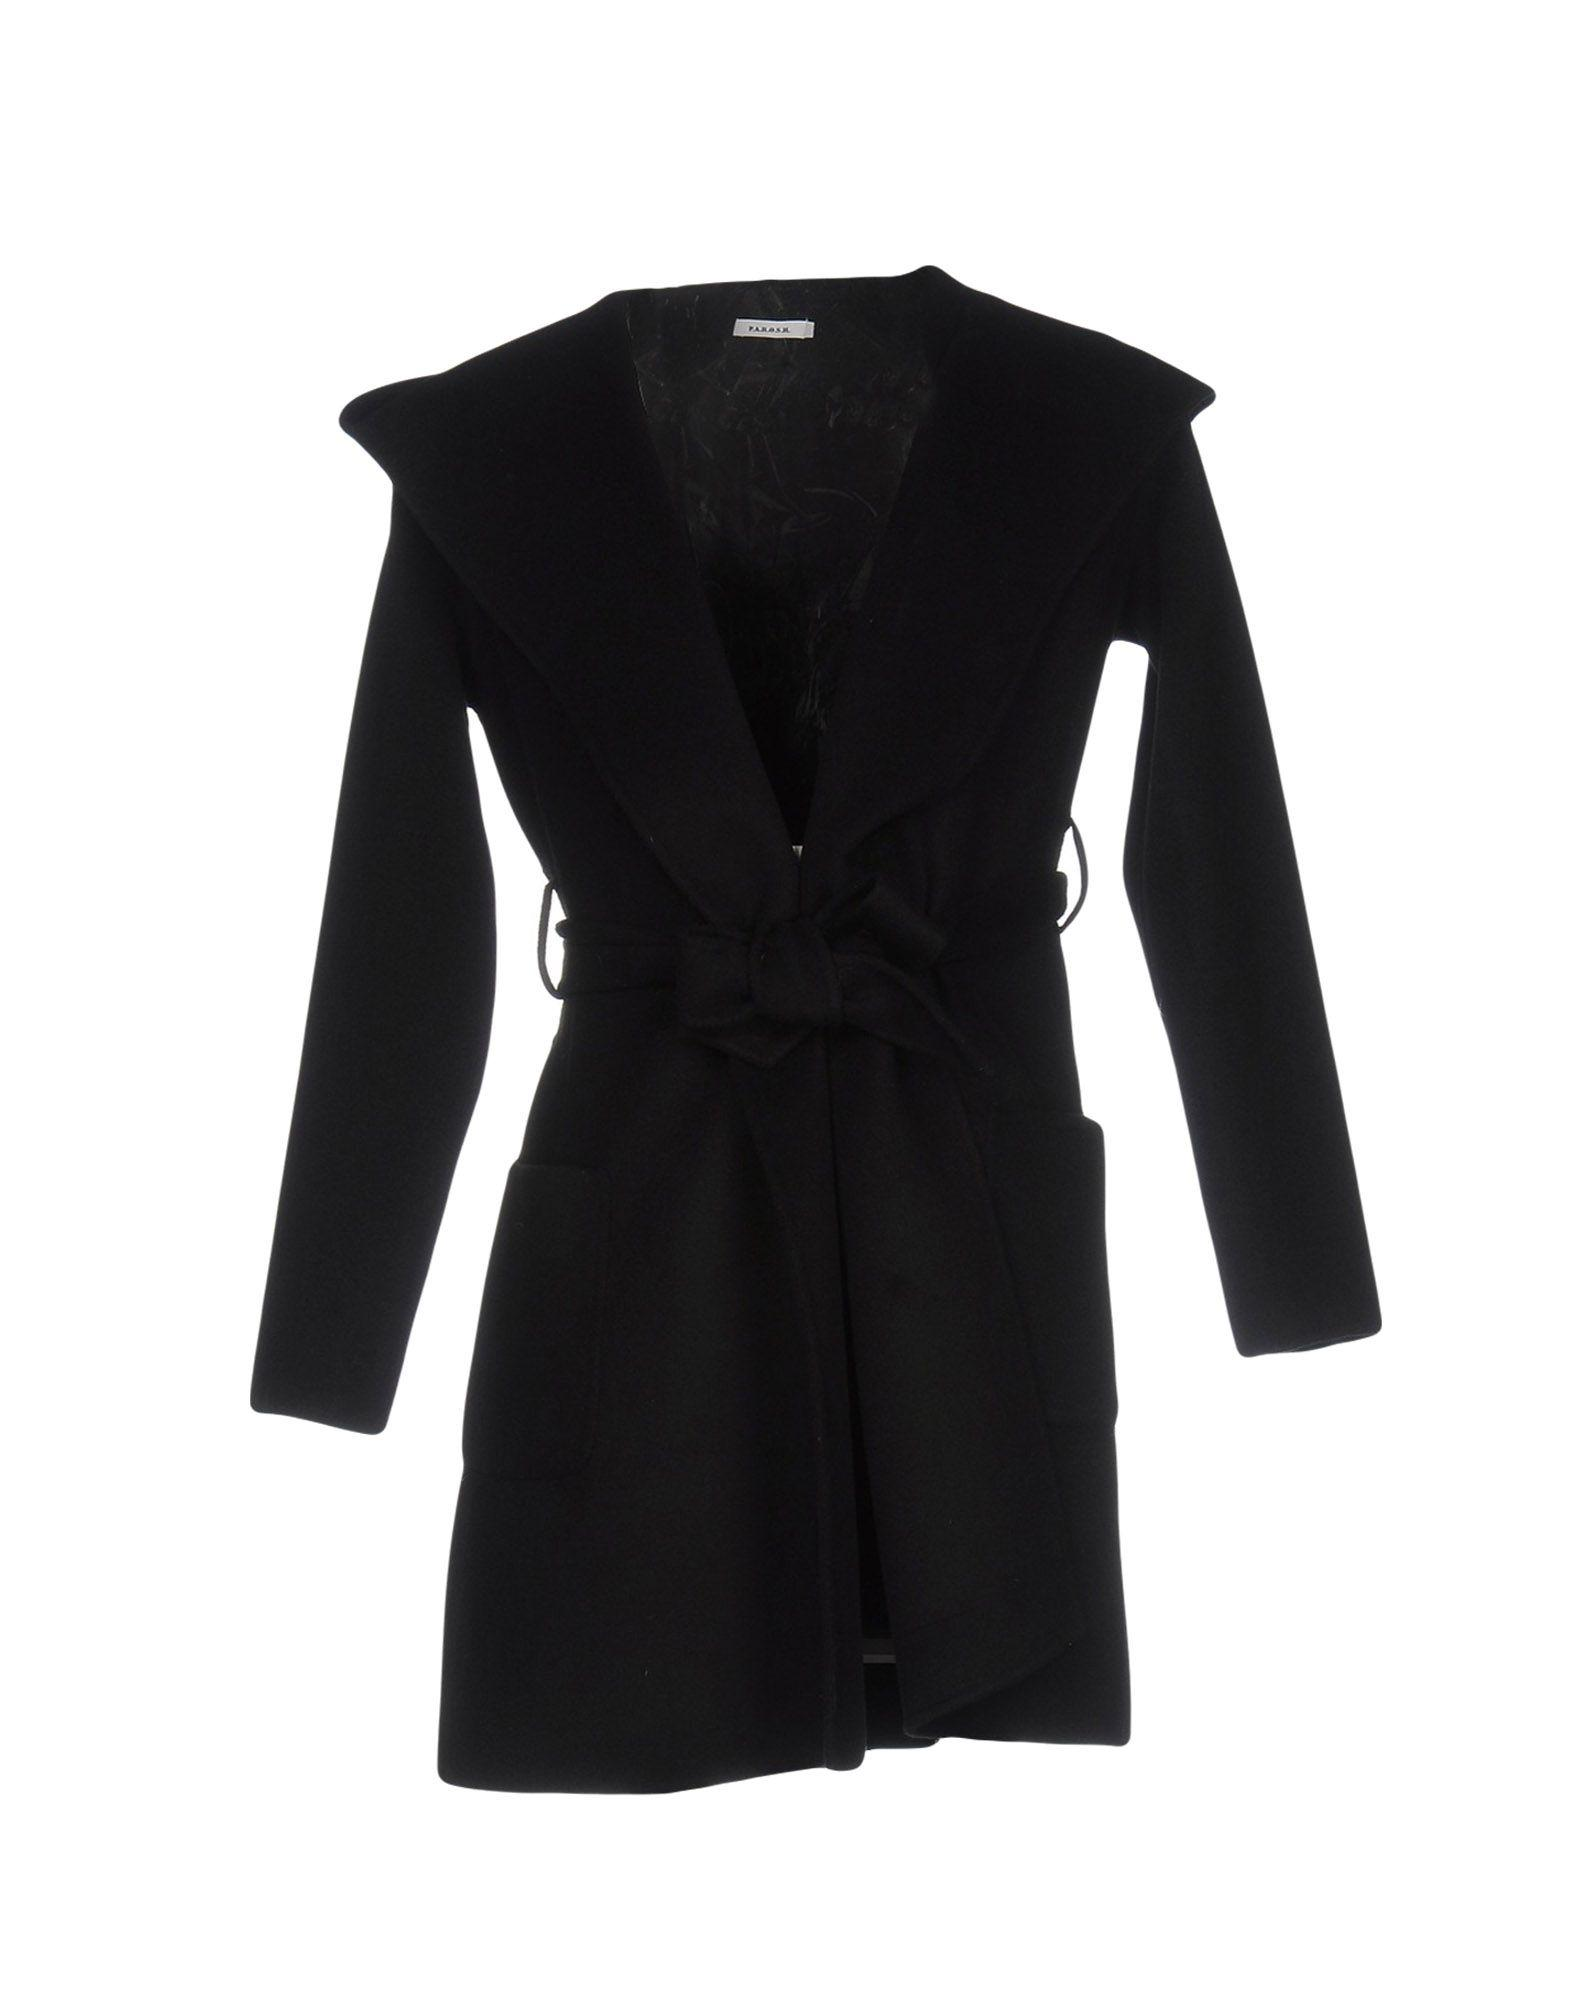 P.a.r.o.s.h. Full-length Jacket In Black